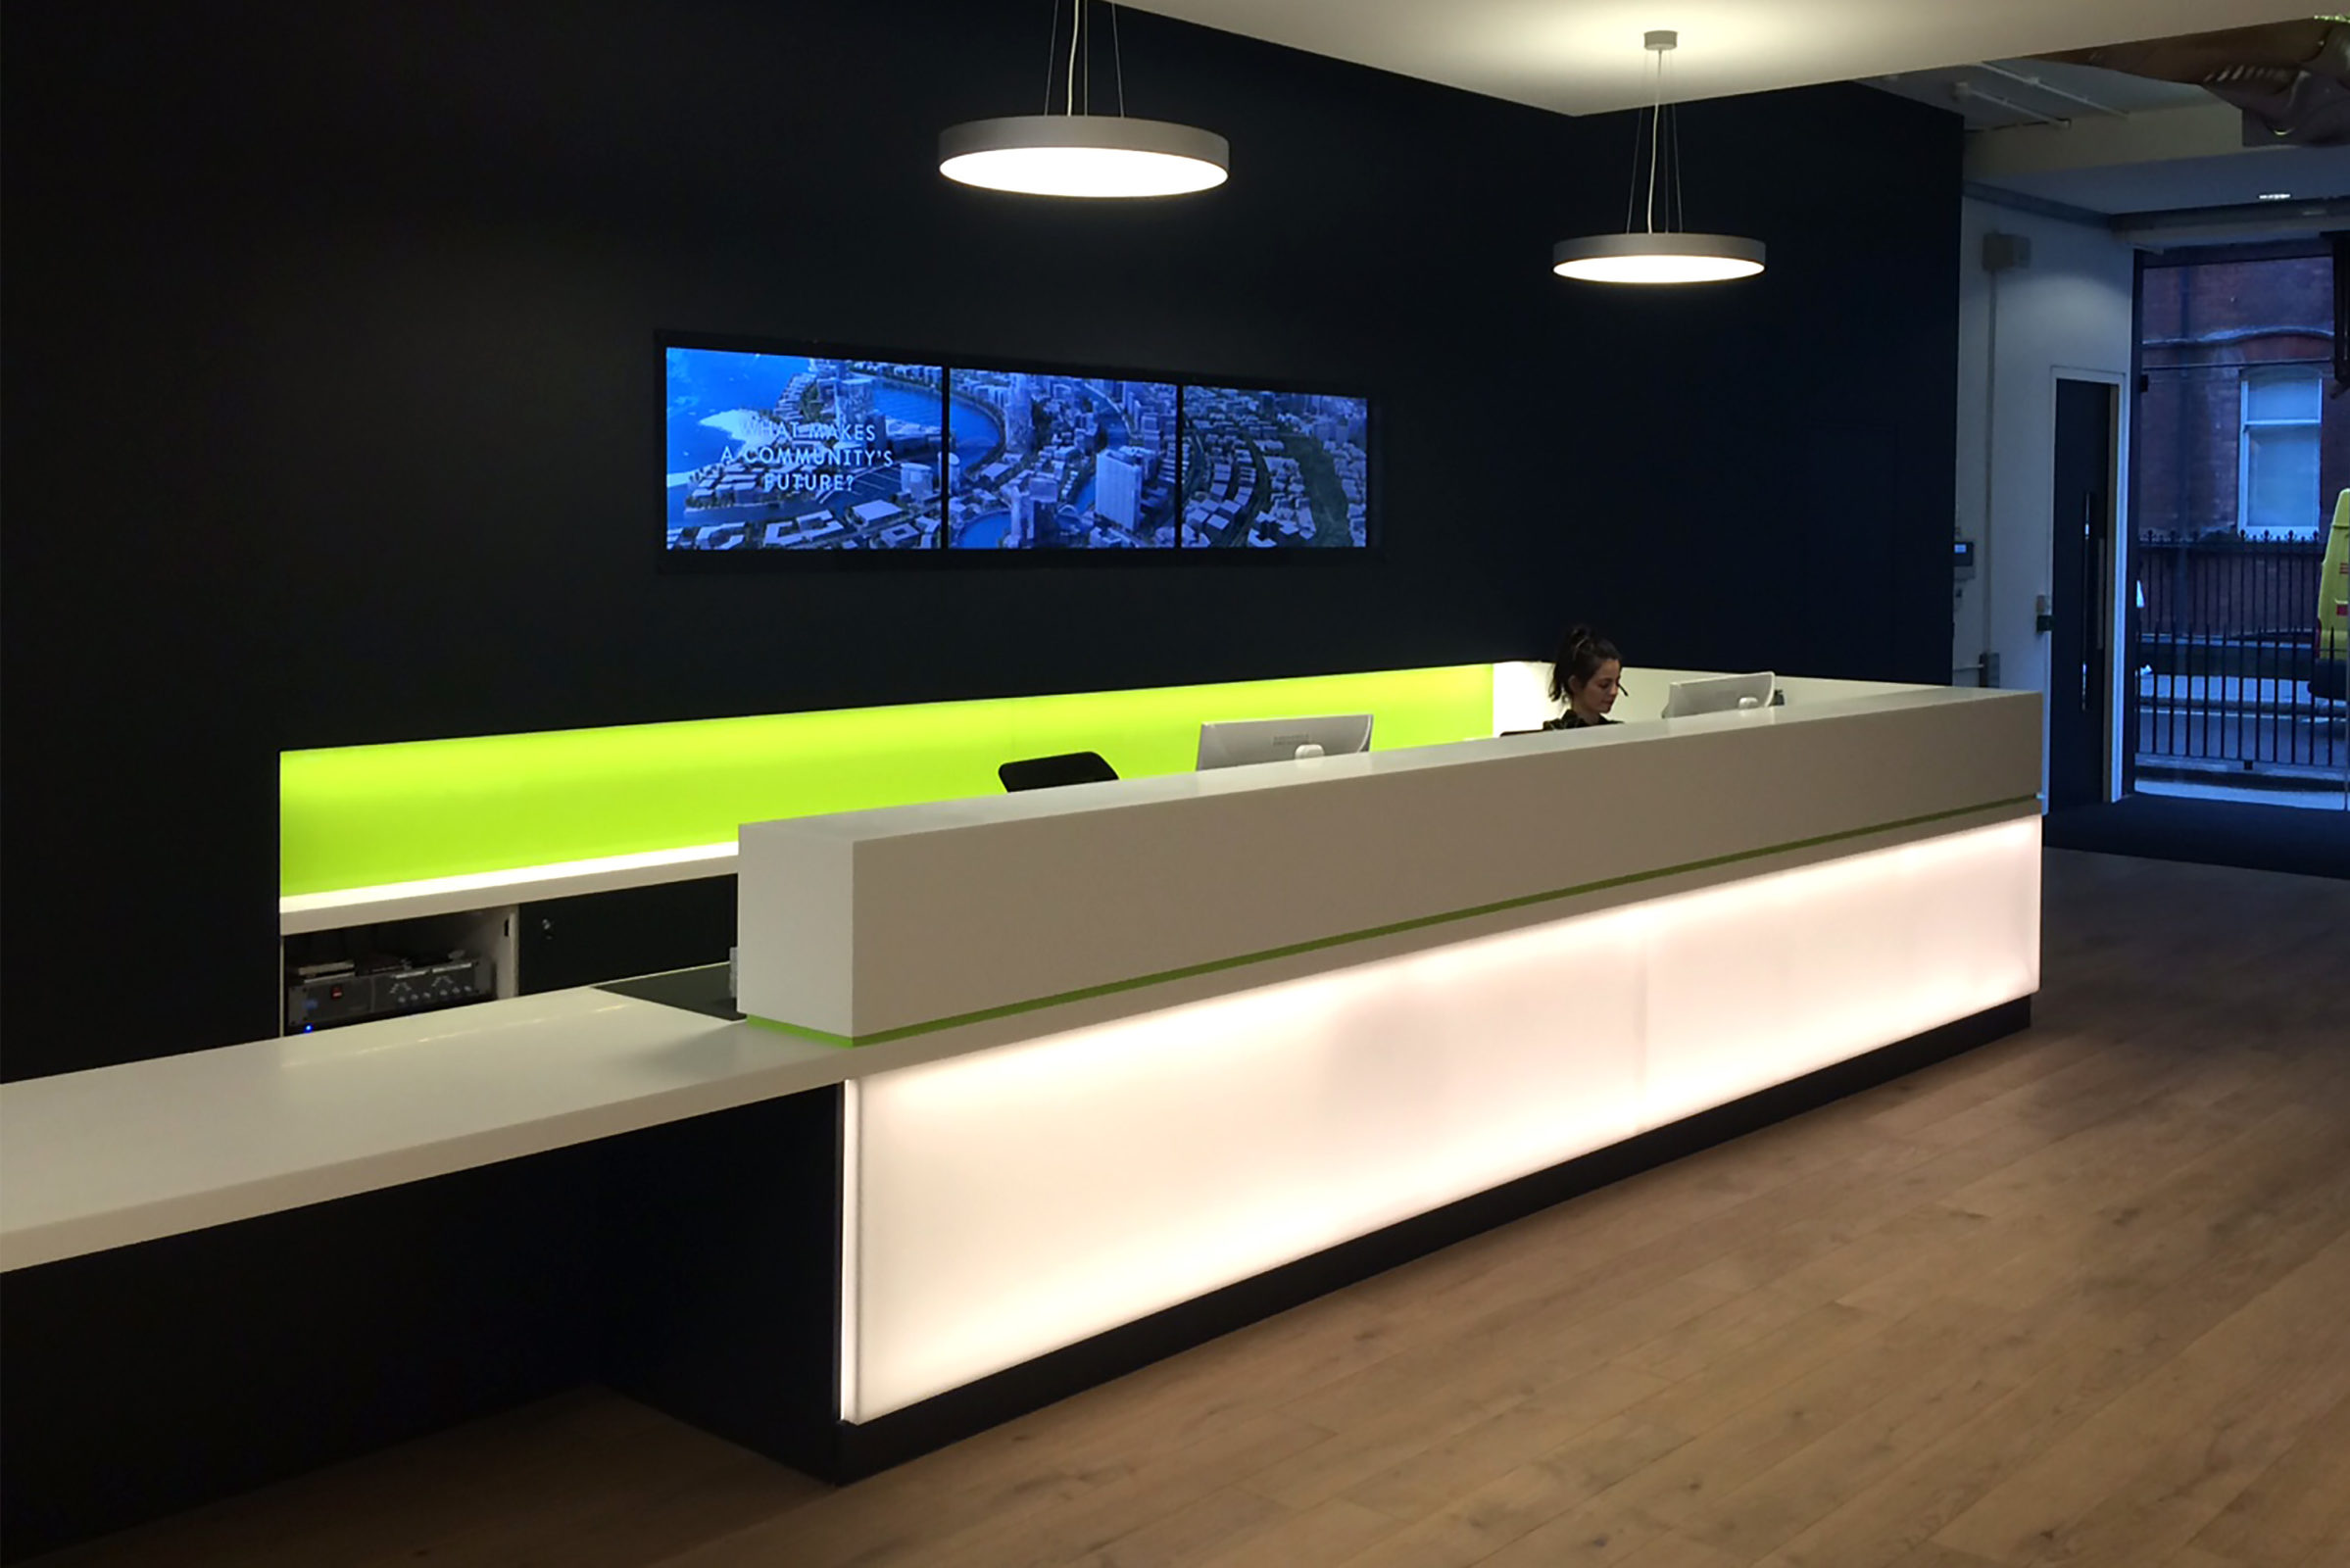 Buro happold offices london design engine architects for Design buro wiesbaden